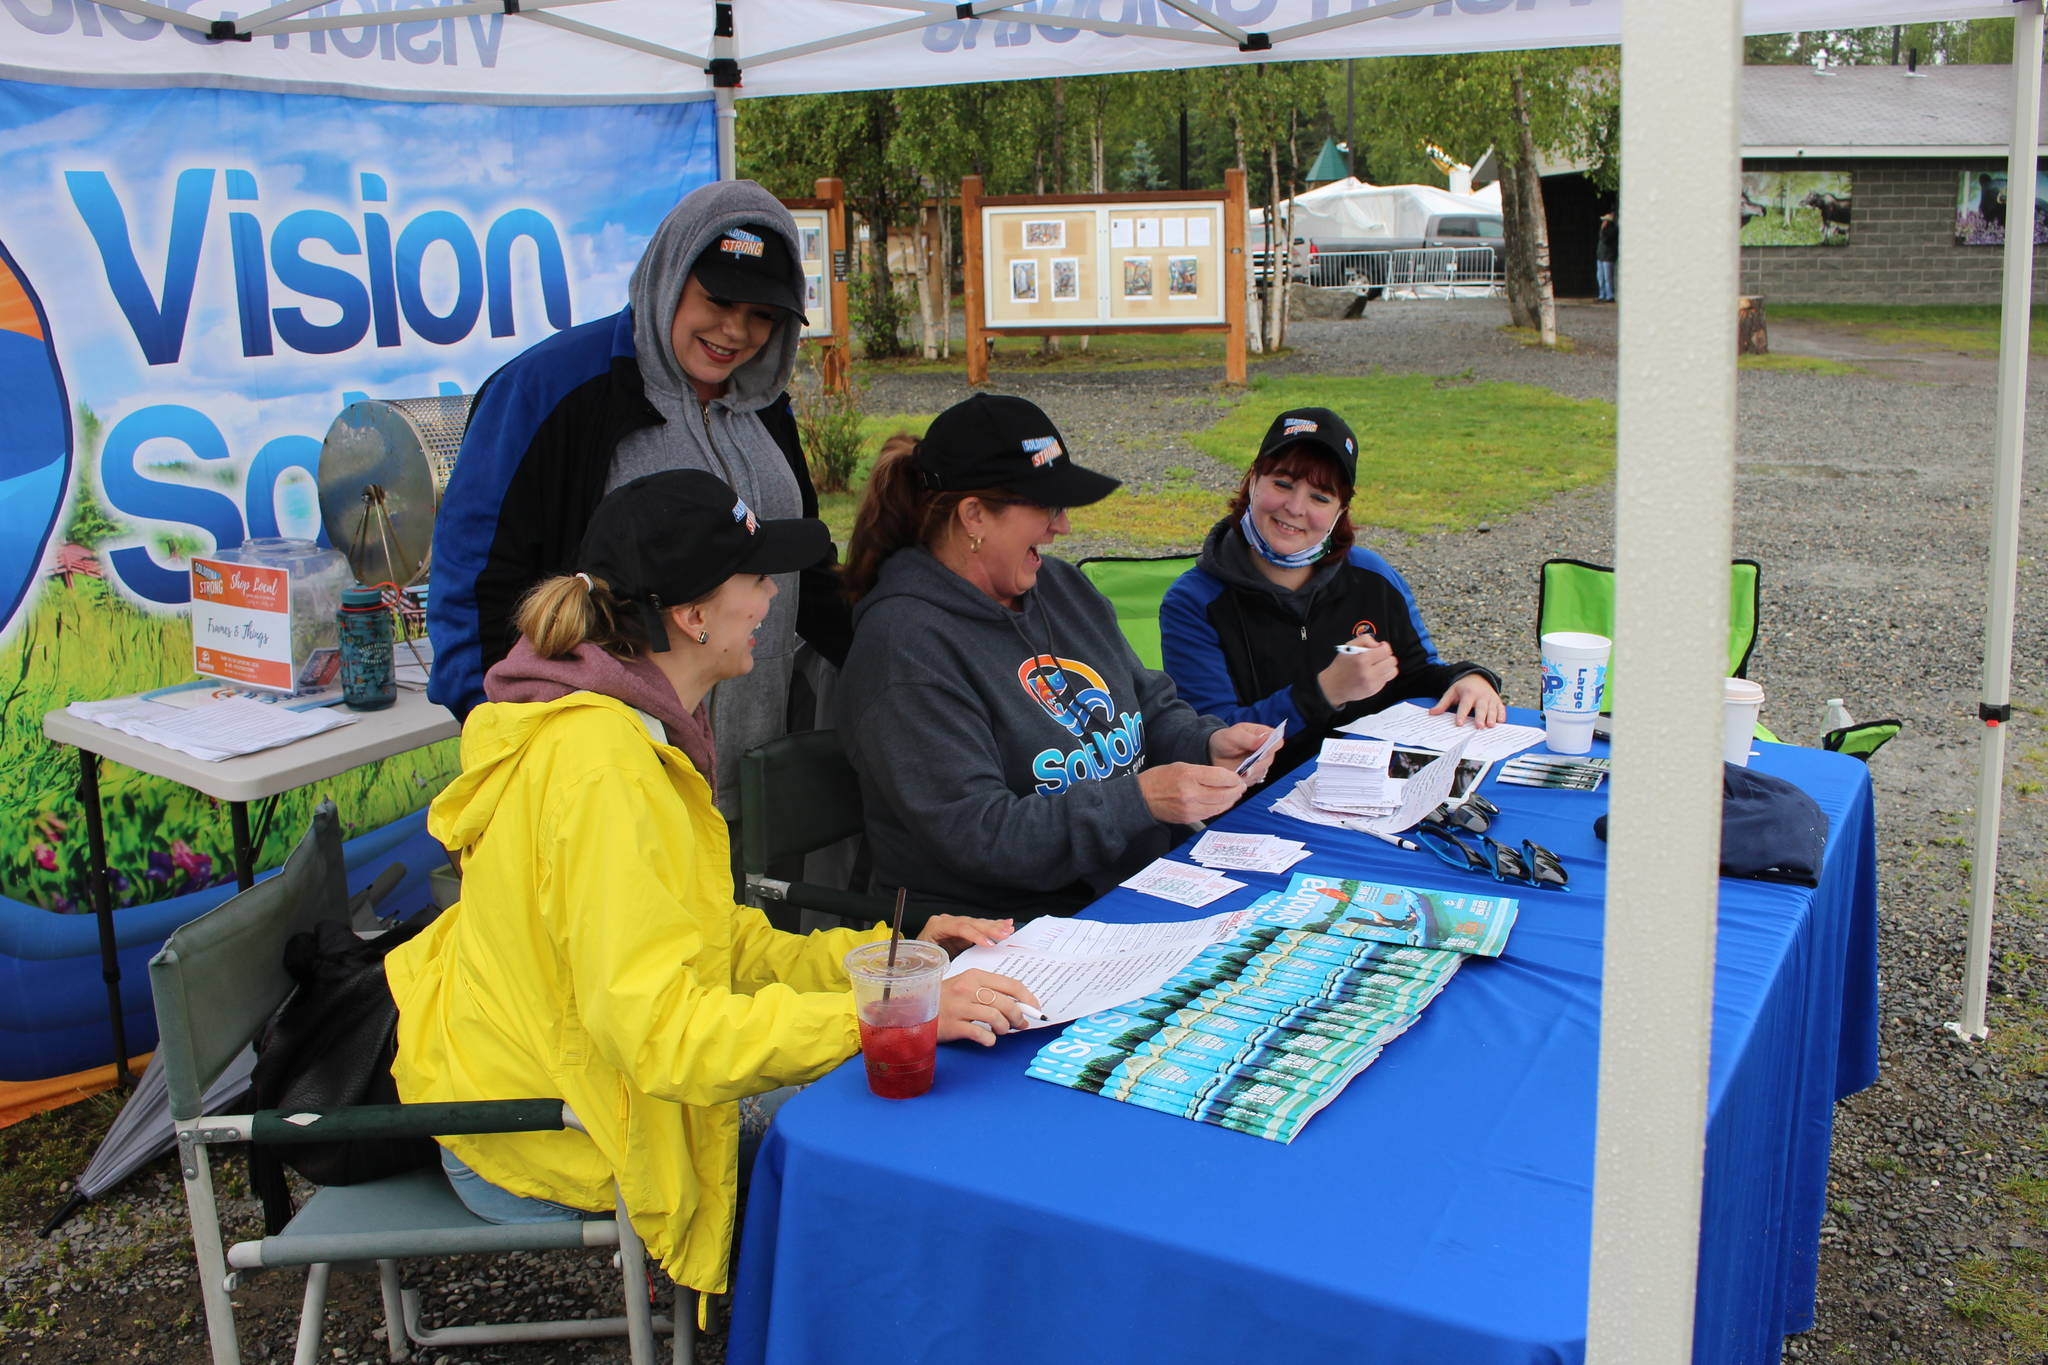 From left, Monique Burgin, Shanon Davis, Teresa Honrud and Sara Hondel of the Soldotna Chamber of Commerce add up the total amount of money spent as part of the Chamber's Soldotna Strong Shop Local campaign during Progress Days in Soldotna Creek Park on July 22, 2020. (Photo by Brian Mazurek/Peninsula Clarion)